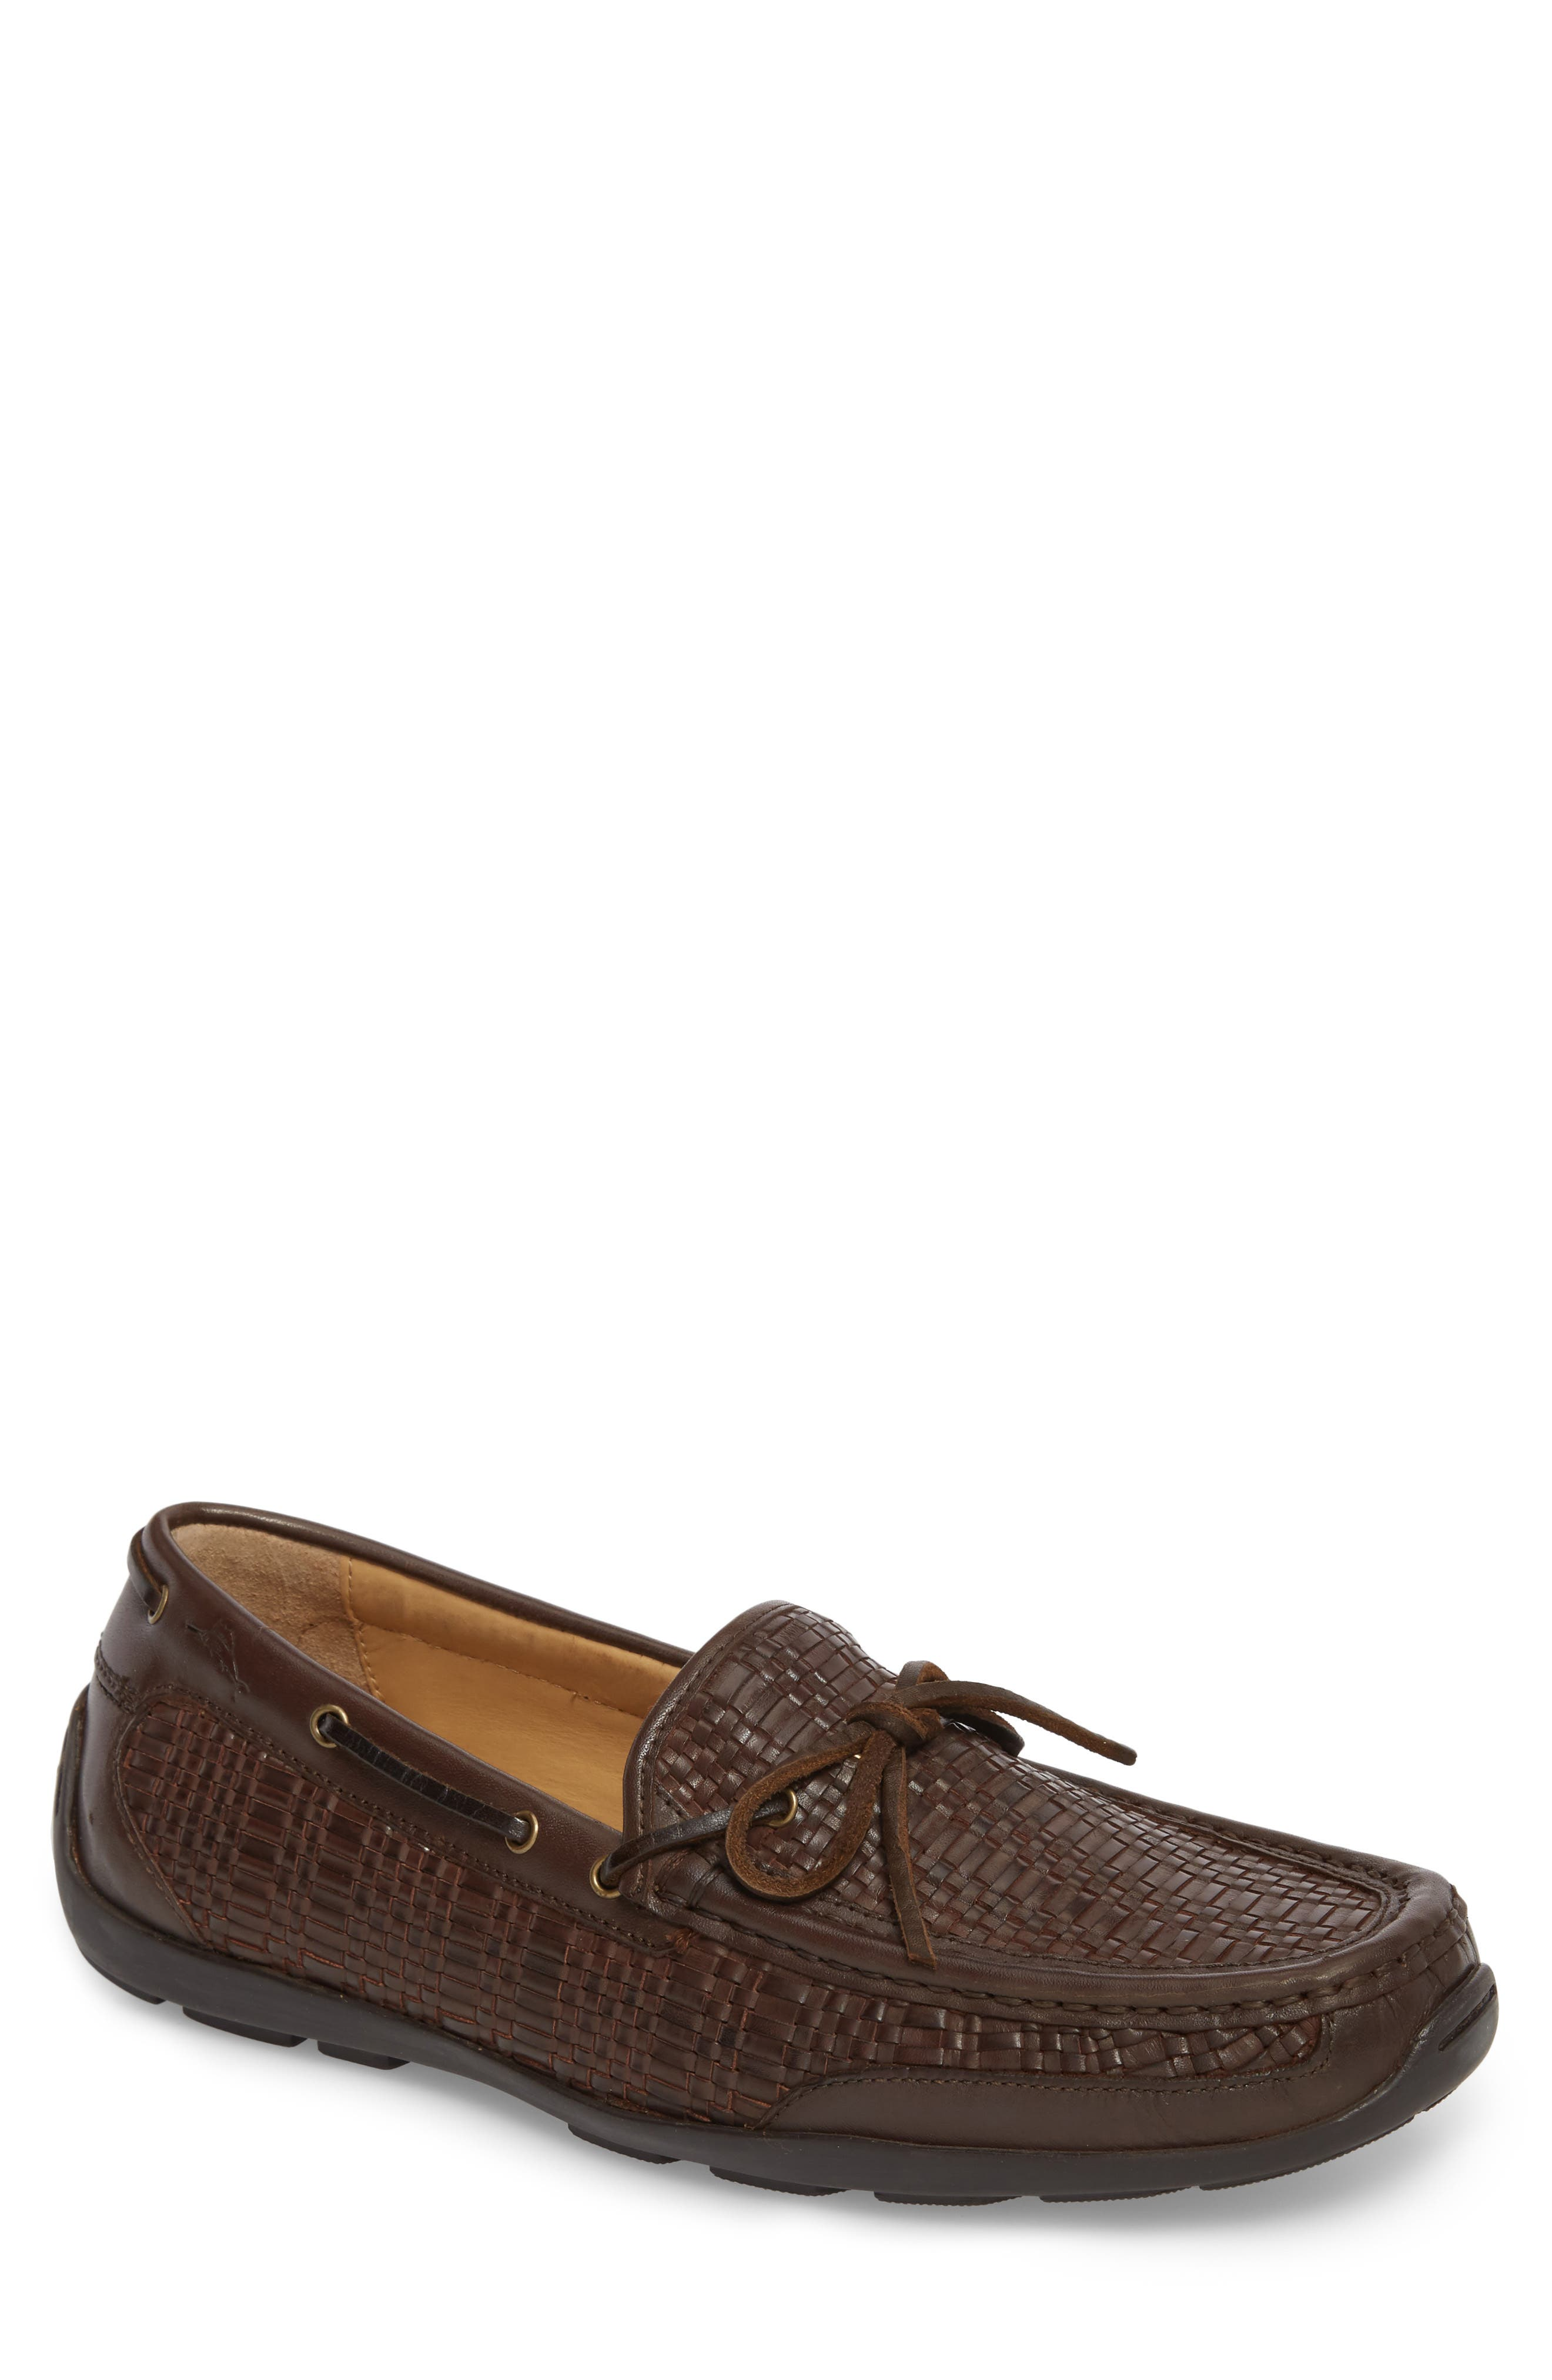 Tangier Driving Shoe,                             Main thumbnail 1, color,                             DARK BROWN WOVEN LEATHER